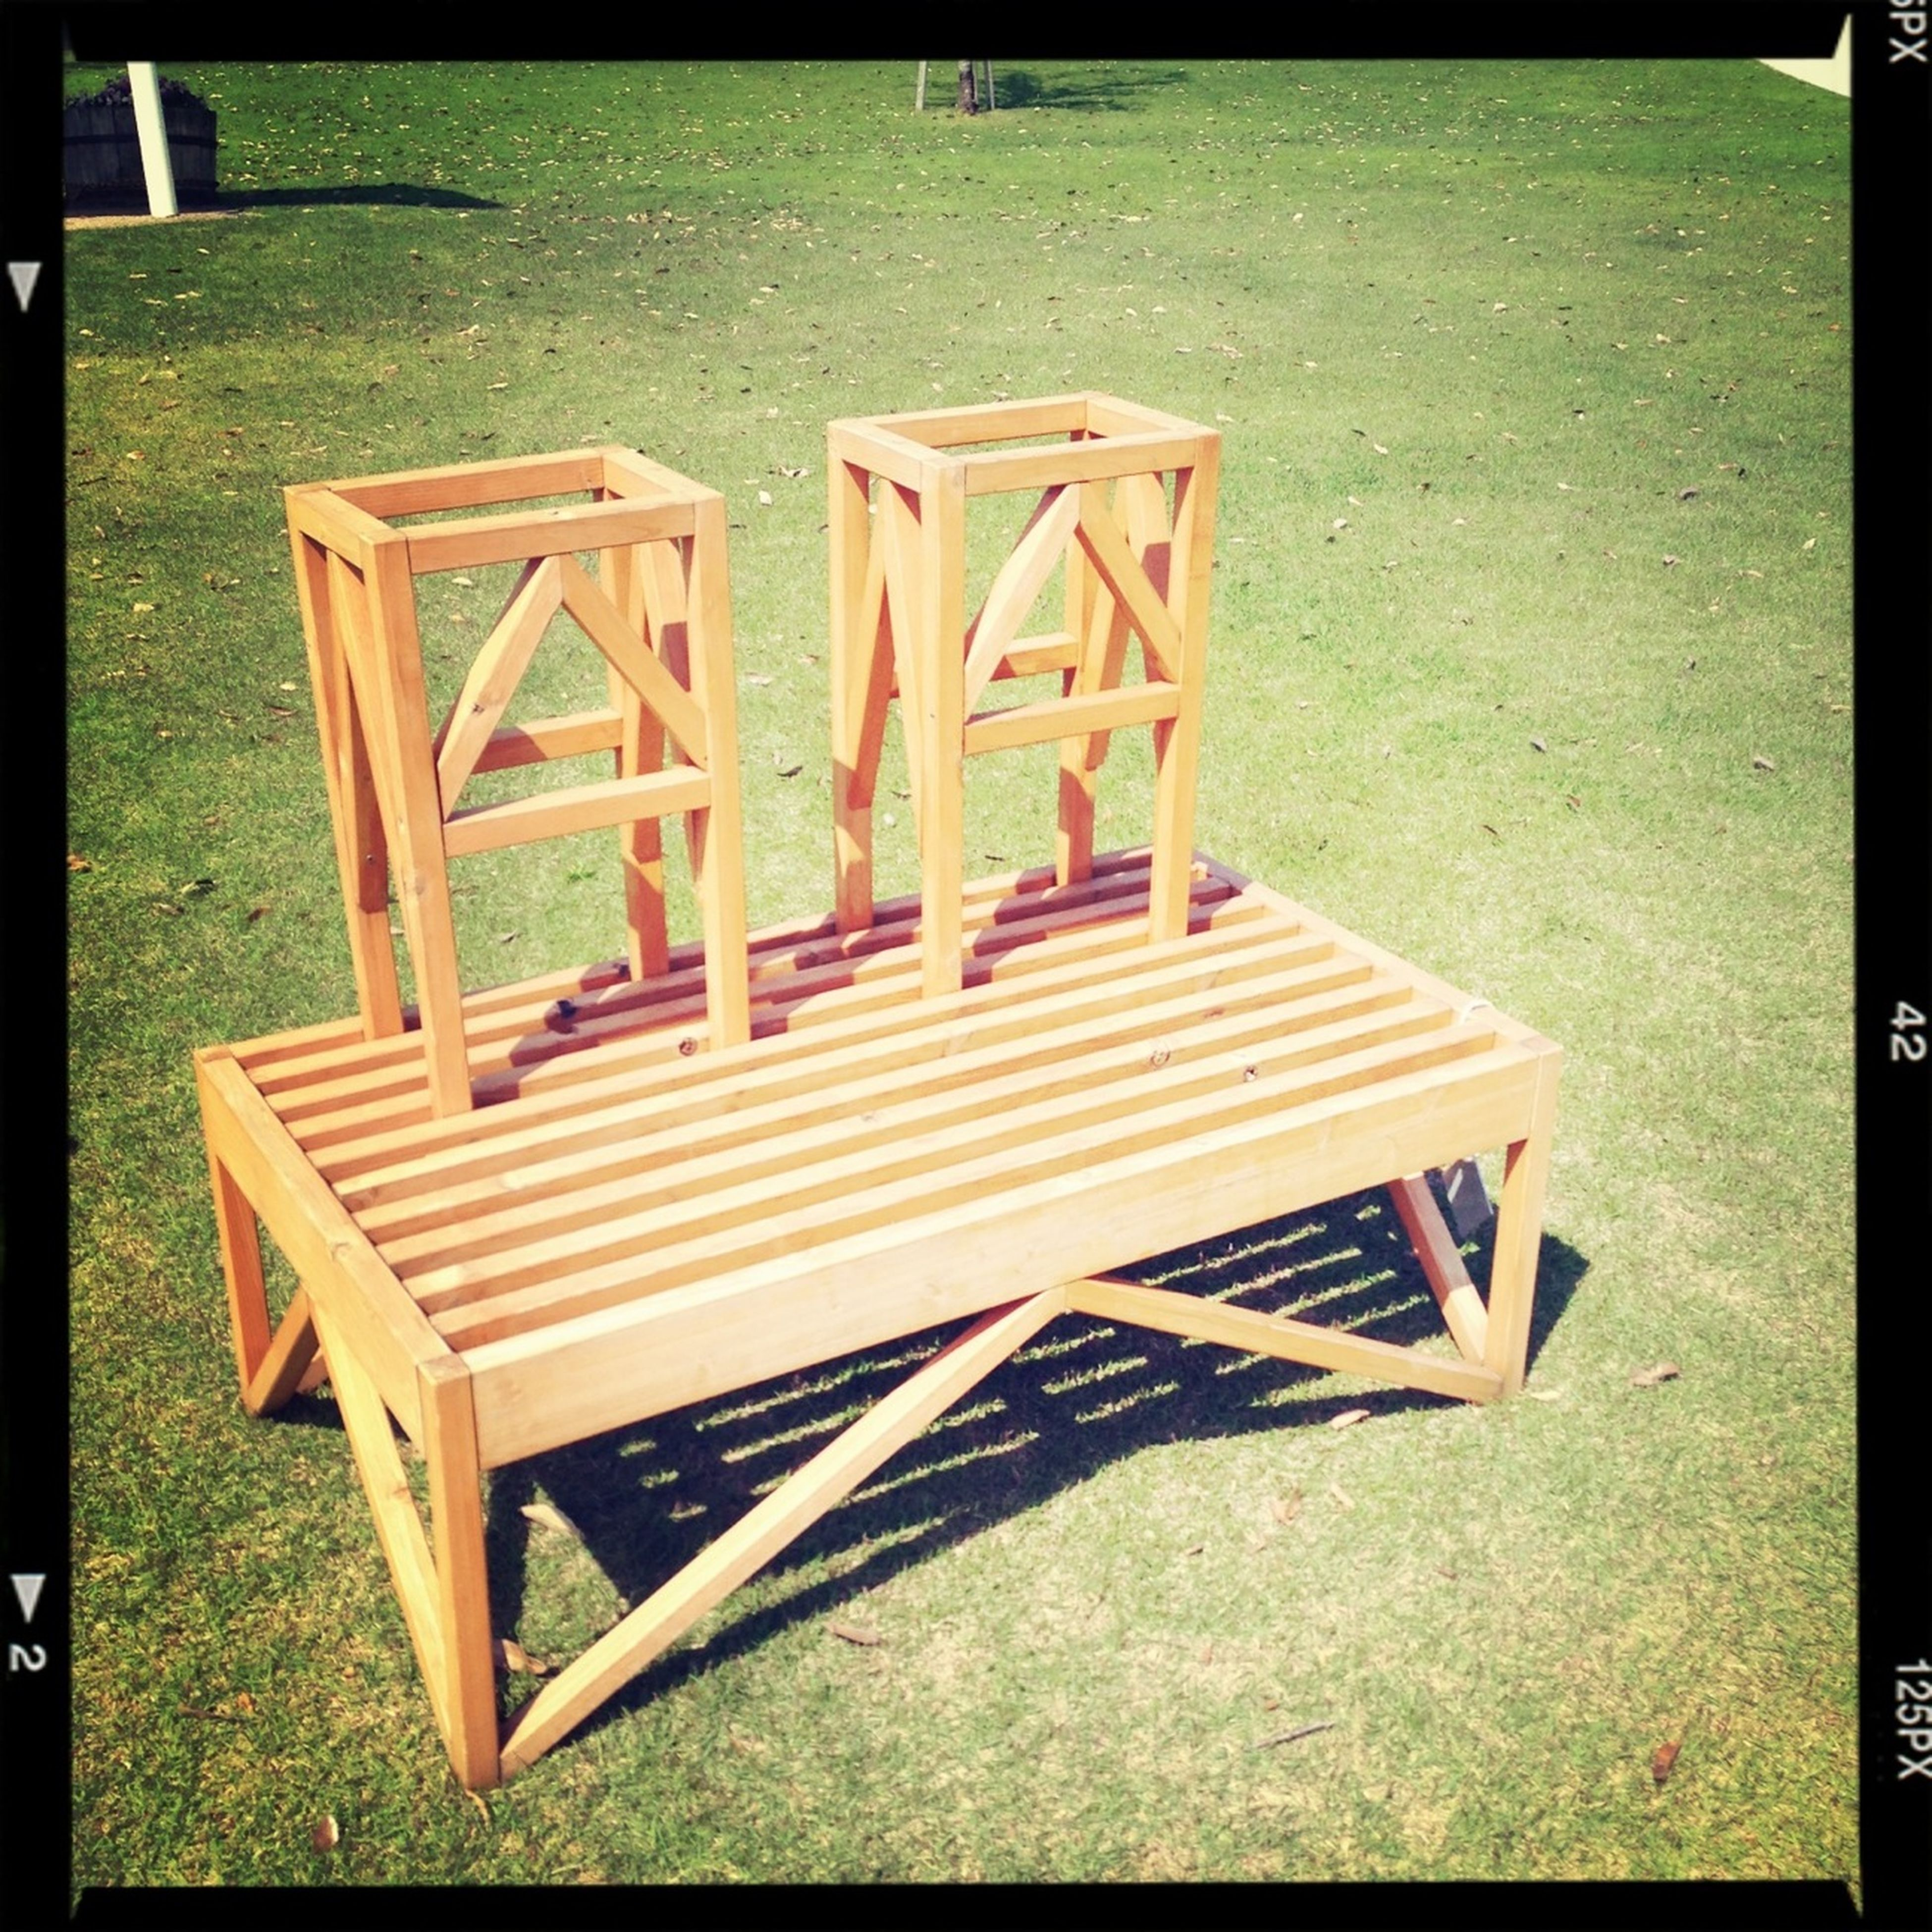 transfer print, bench, empty, grass, auto post production filter, absence, chair, wood - material, park bench, seat, park - man made space, wooden, relaxation, tranquility, sunlight, wood, day, railing, shadow, outdoors